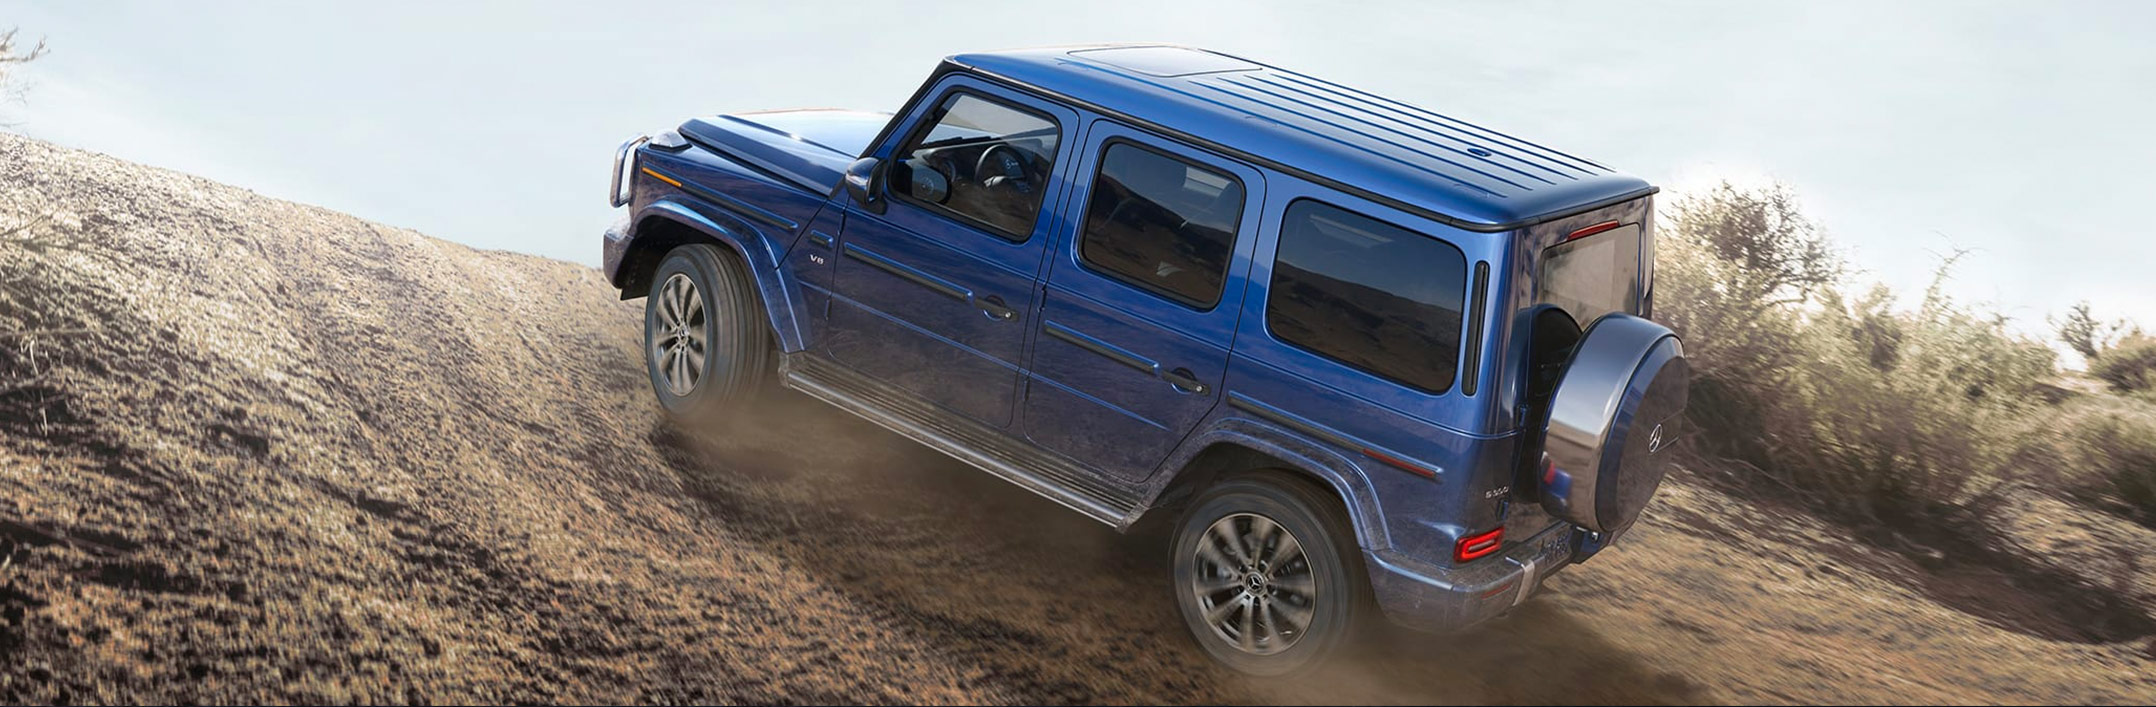 2019 G-Class Specs, Performance & Safety